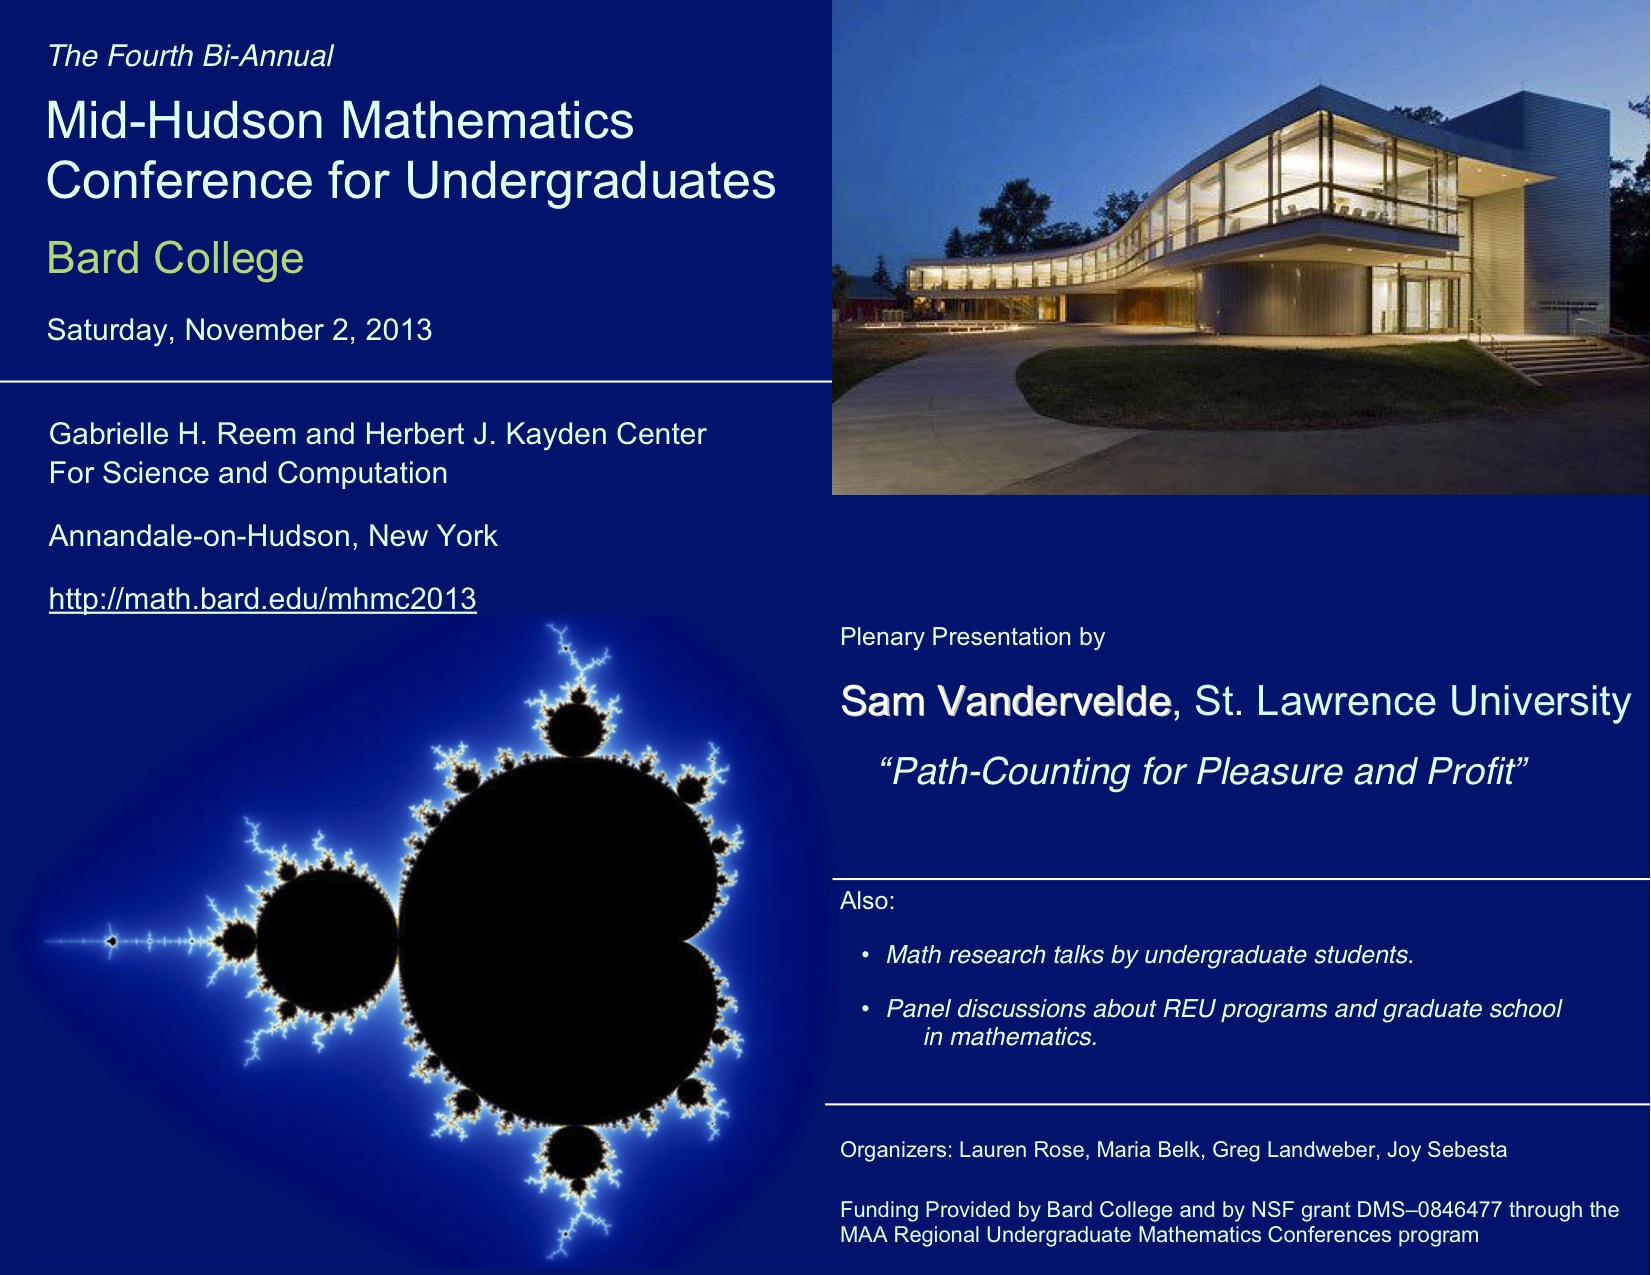 [Mid-Hudson Math Conference for Undergraduates]